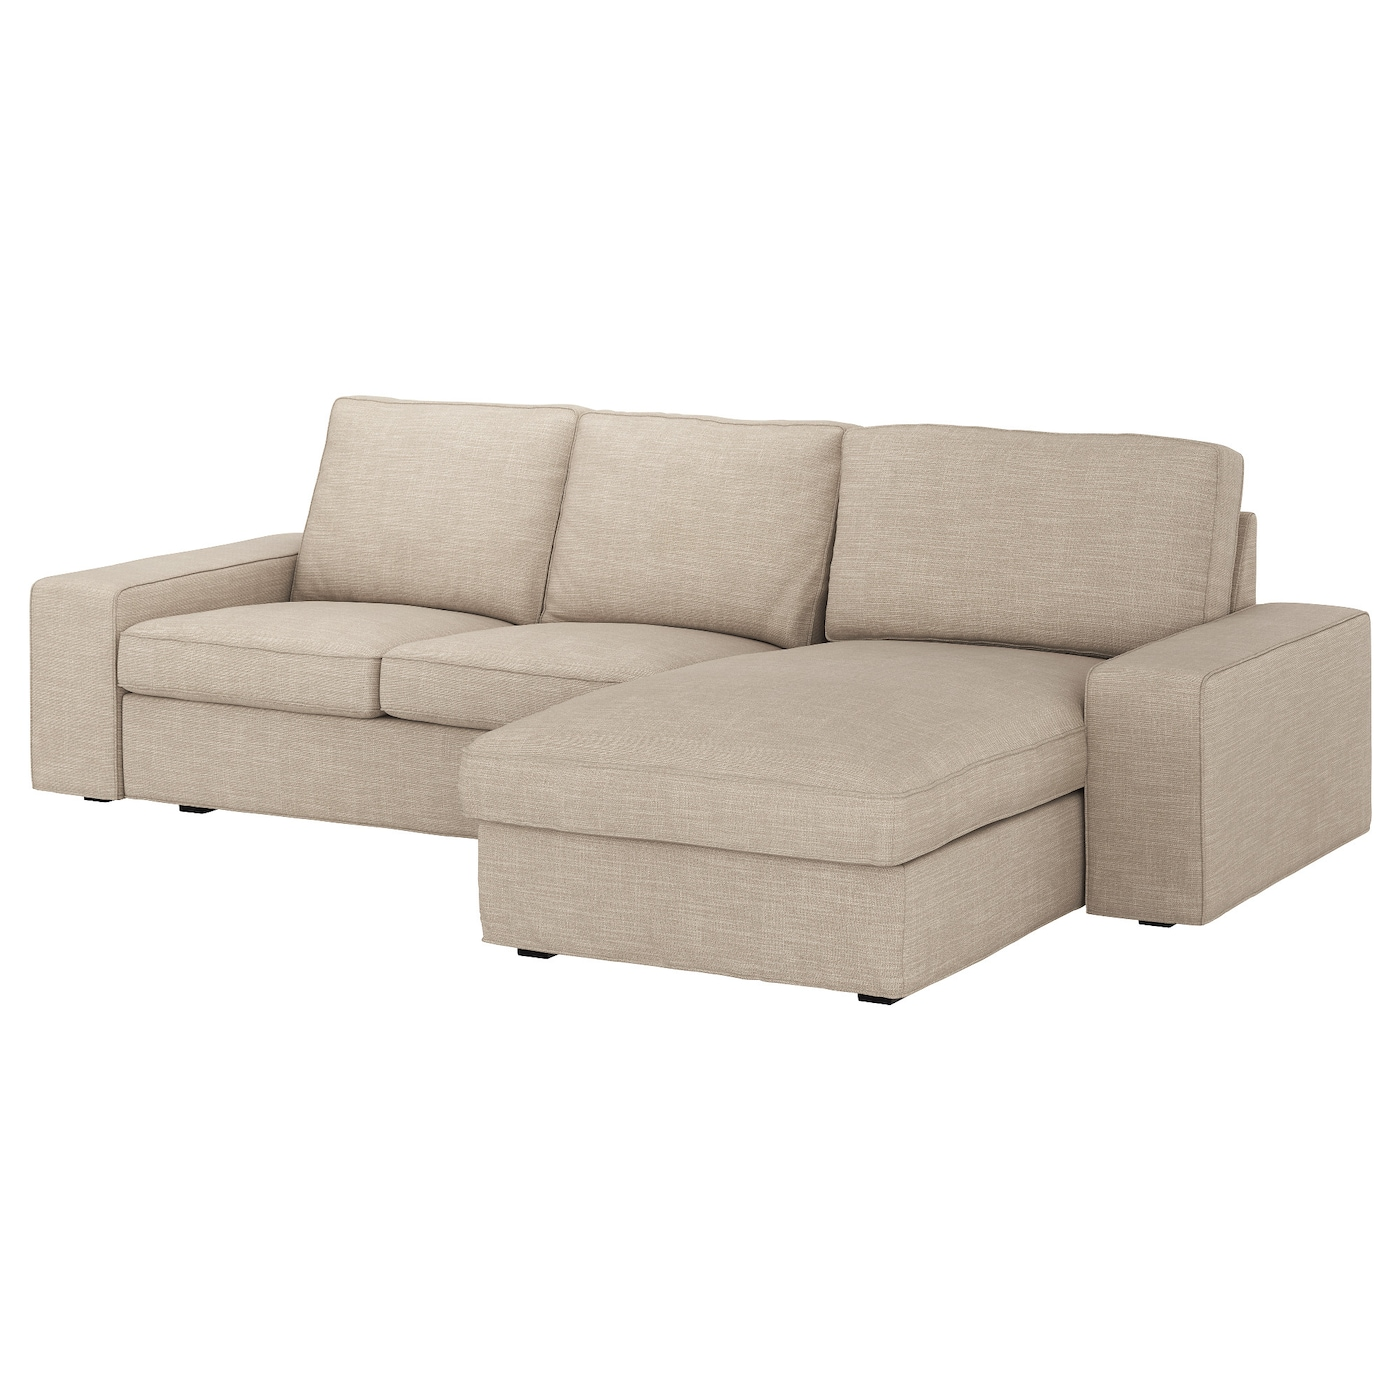 Kivik 3 seat sofa with chaise longue hillared beige ikea for Chaise longue furniture